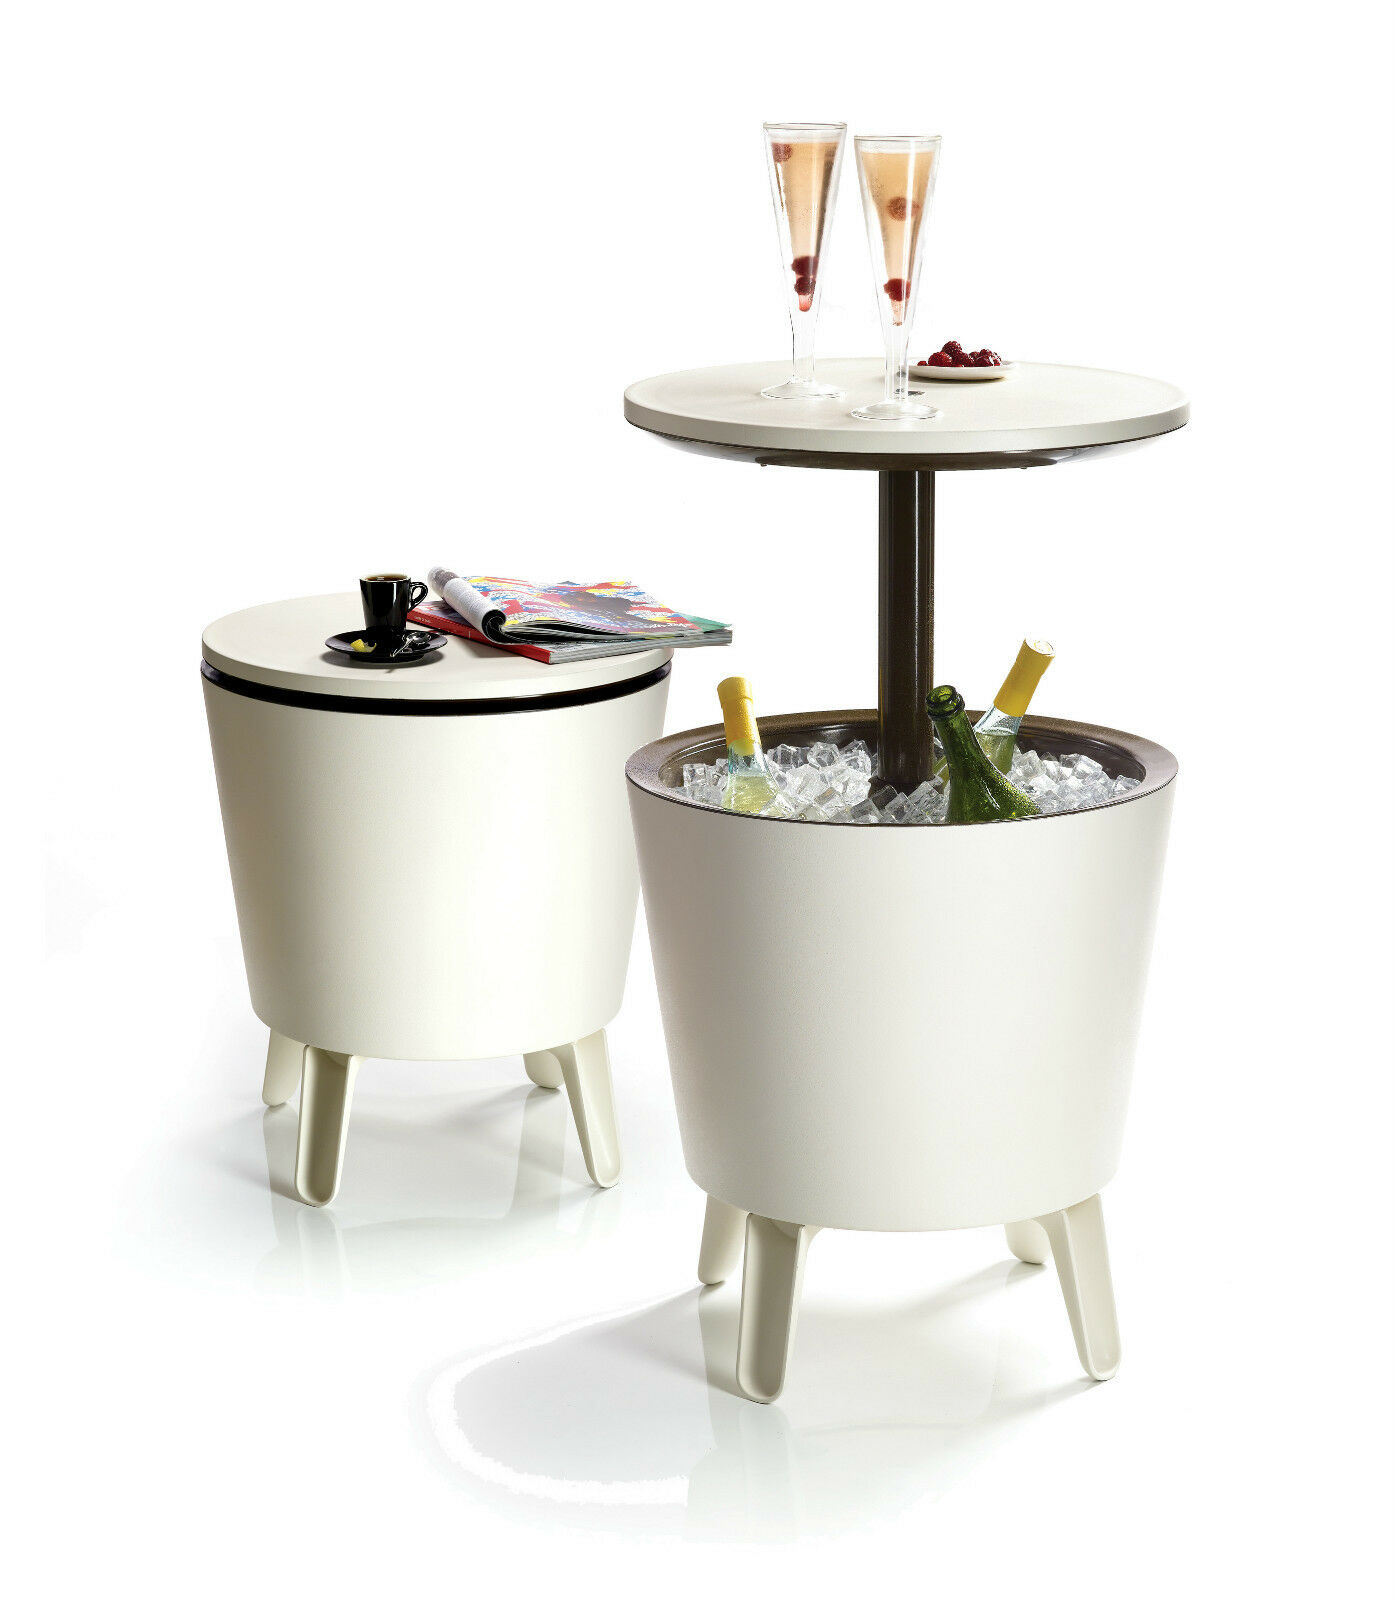 Keter coolbar patio drinks cooler cocktail coffee party for Outdoor coffee table with cooler